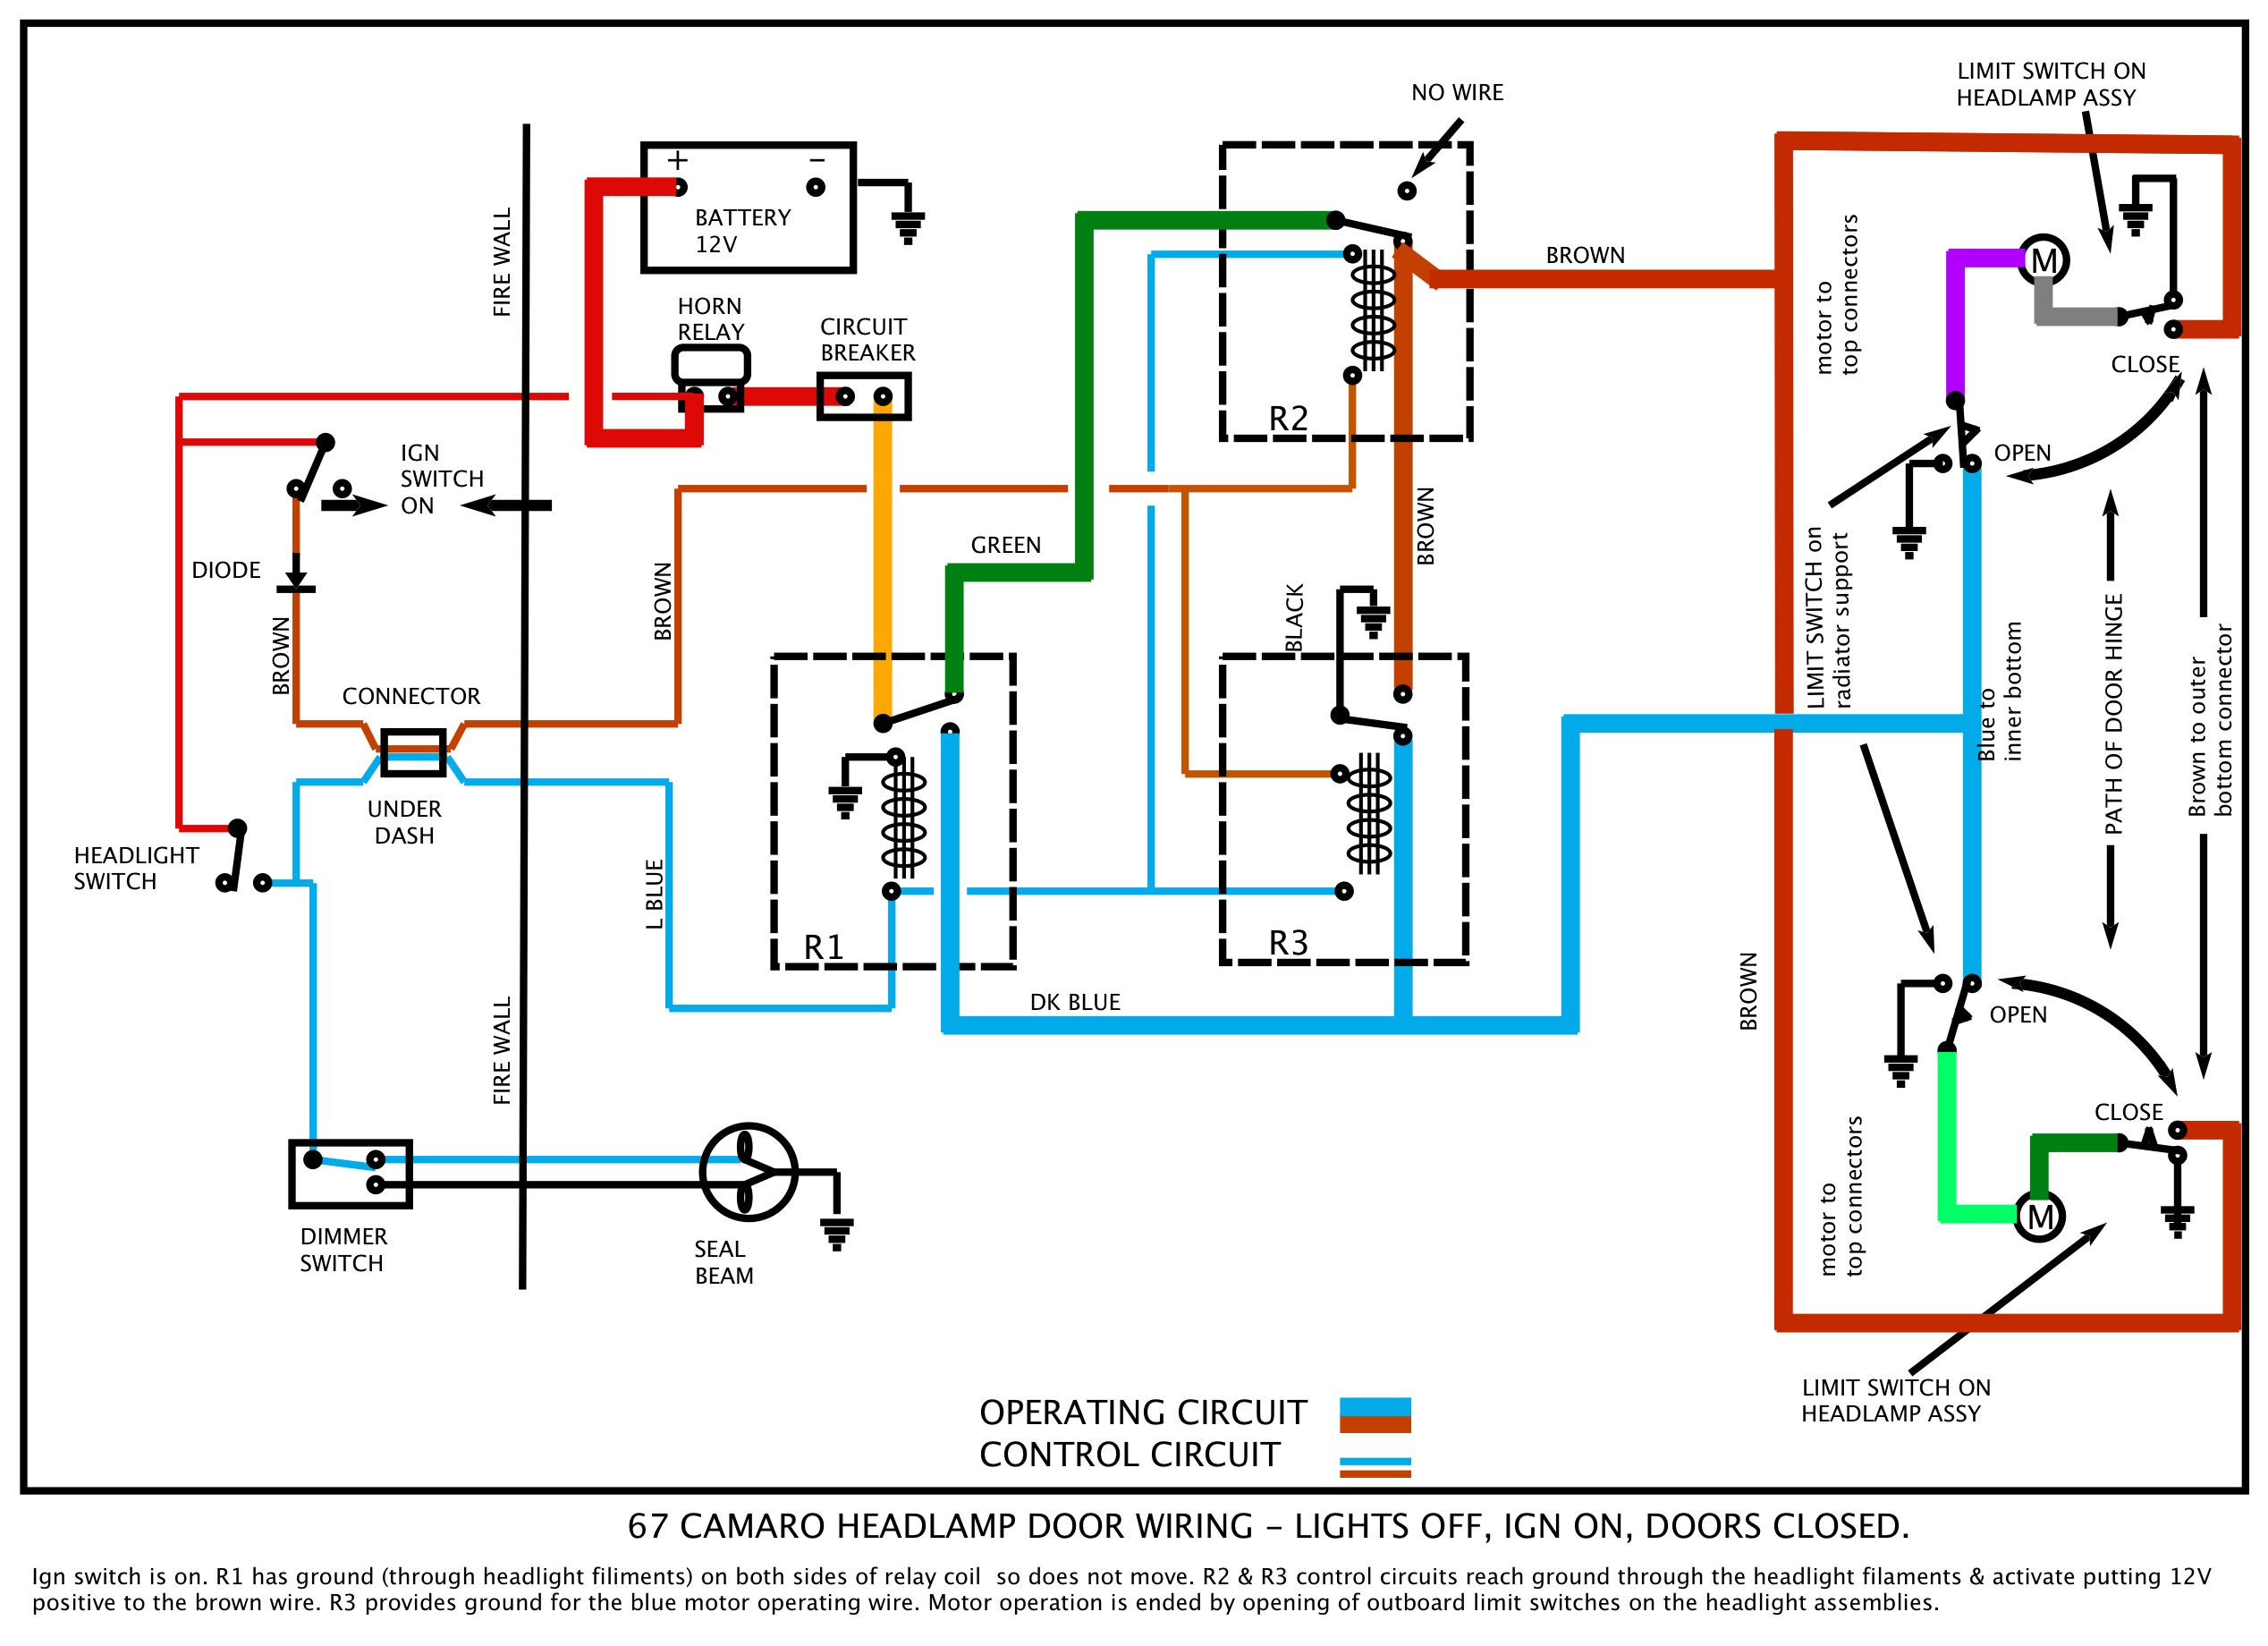 68 camaro ignition lock cylinder on 68 camaro painless wiring1967 camaro steering column wiring diagram diagram data schema exp 68 camaro ignition lock cylinder on 68 camaro painless wiring harness